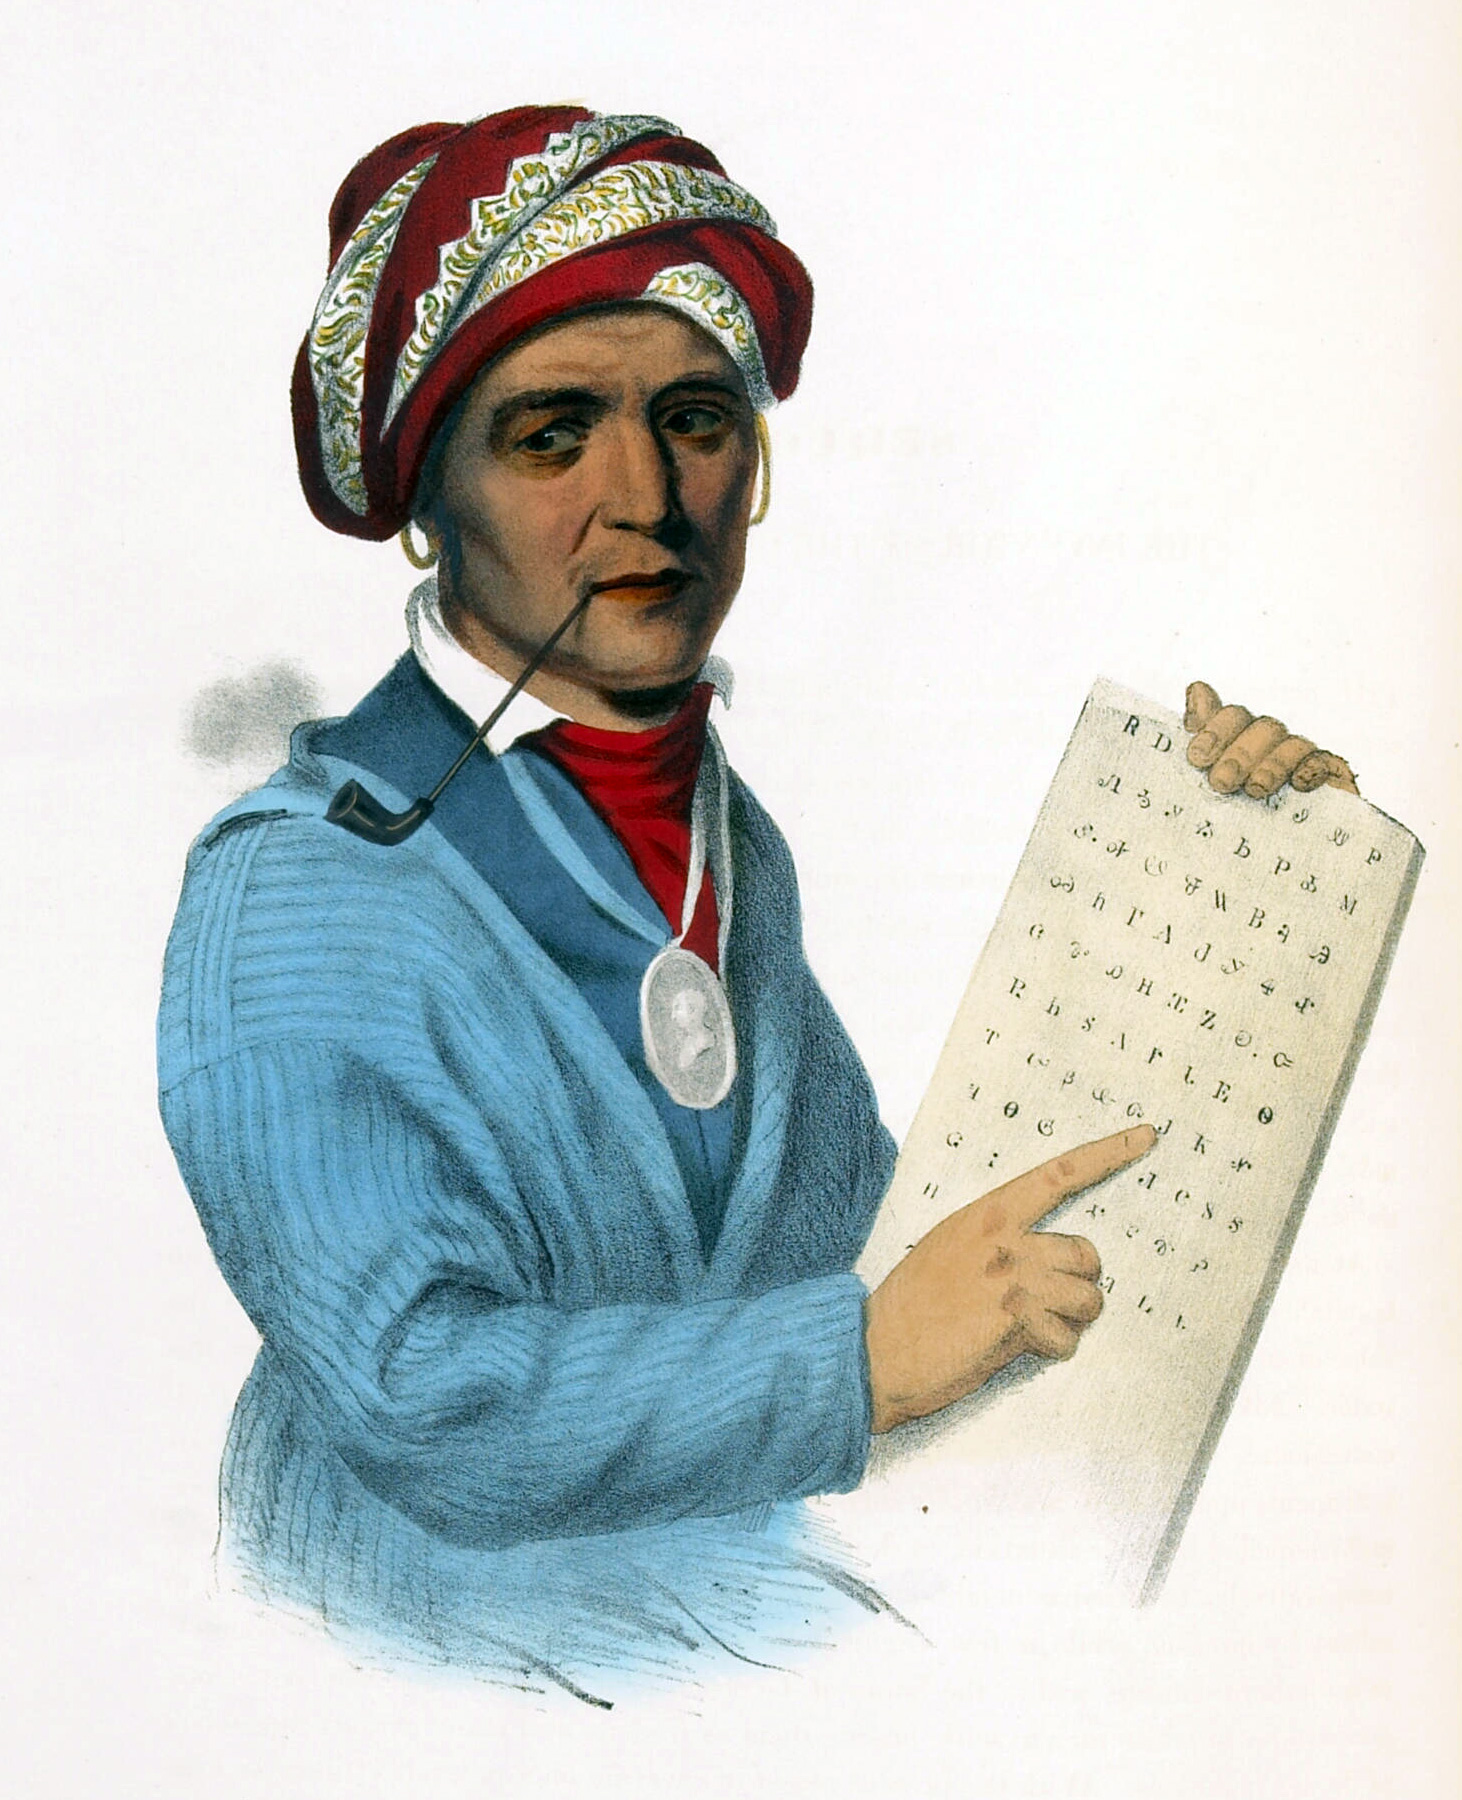 Sequoyah created a written language for Cherokee, but it isn't saving it from the threat of extinction.